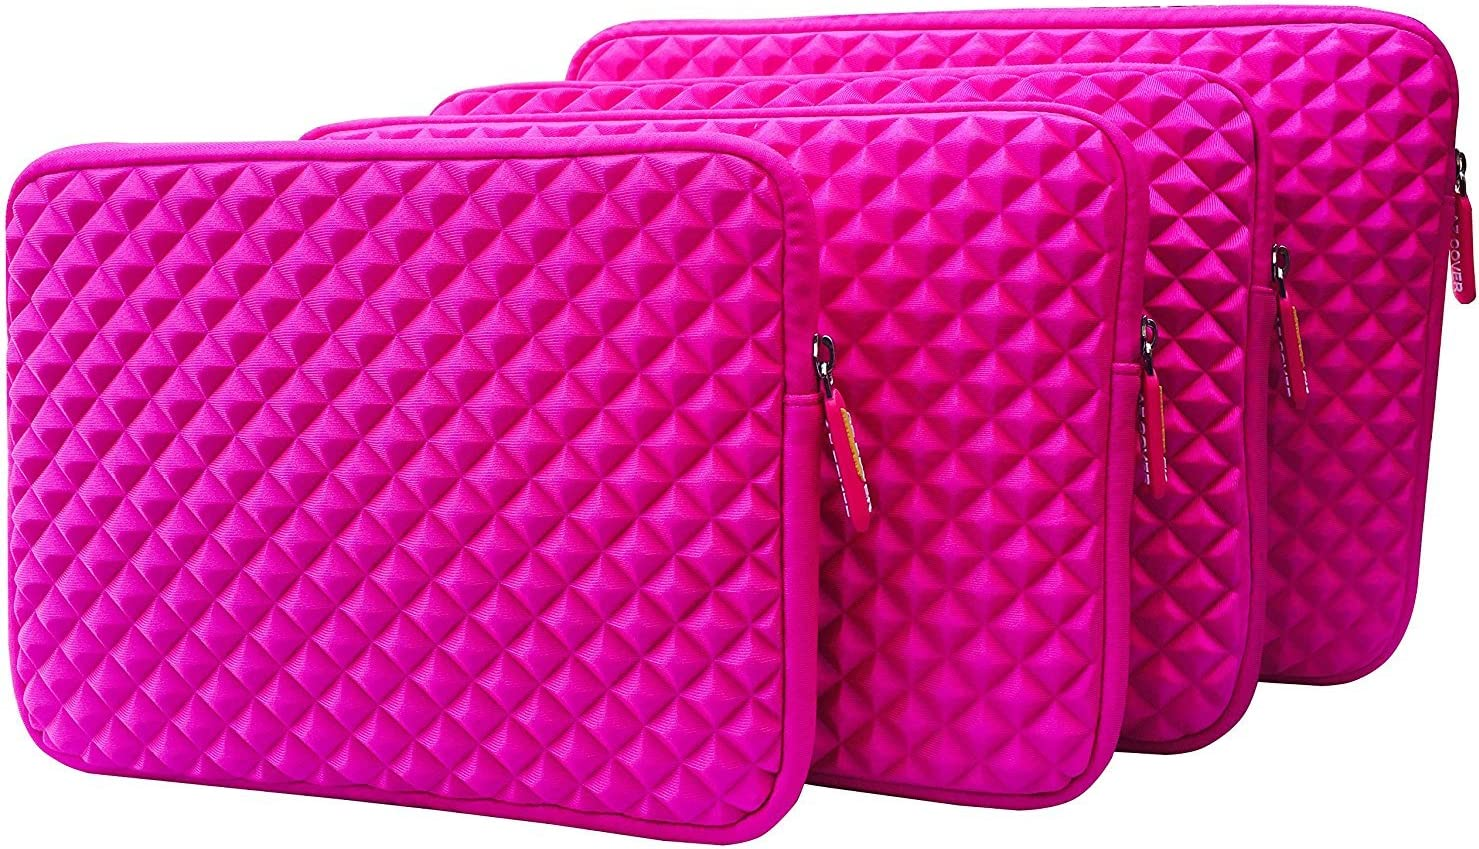 AZ-Cover 14-Inch Simplicity Stylish Diamond Foam Shock-Resistant Neoprene Sleeve (Hot Pink) For HP Probook 6460B 6460b 6450B Notebook PC - Intel Core